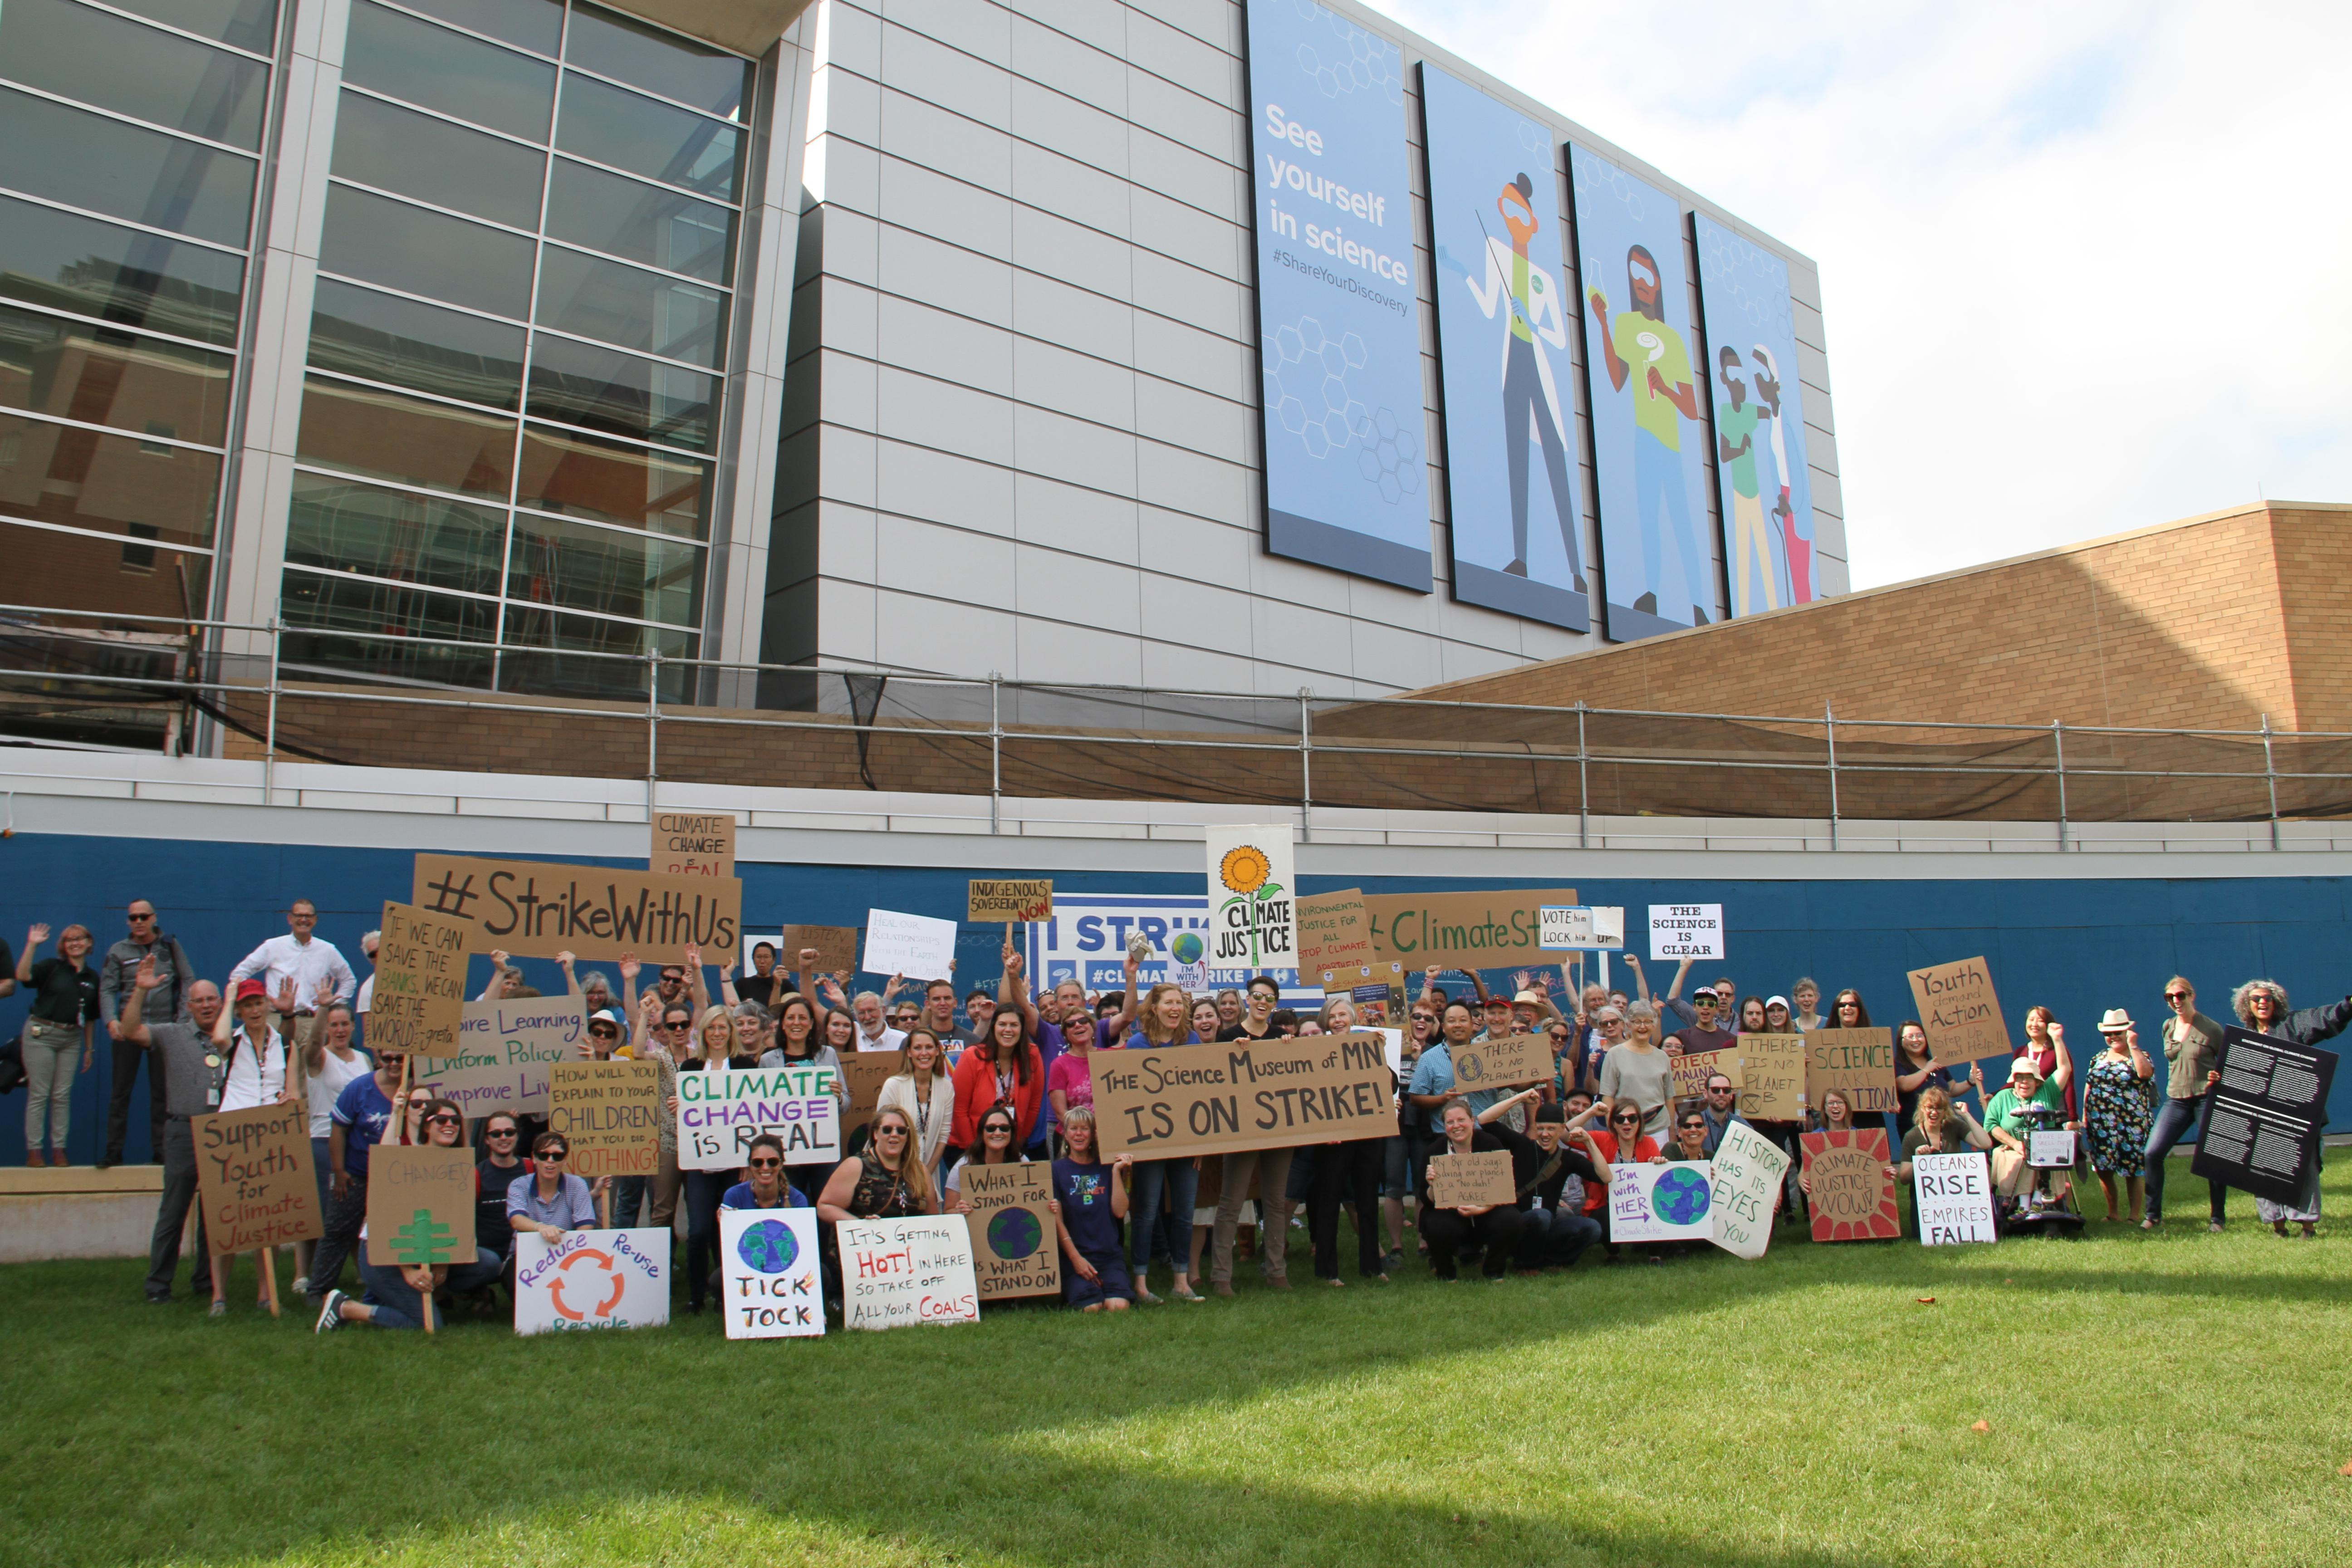 Group photo of Science Museum staff holding signs, participating in the climate strike.